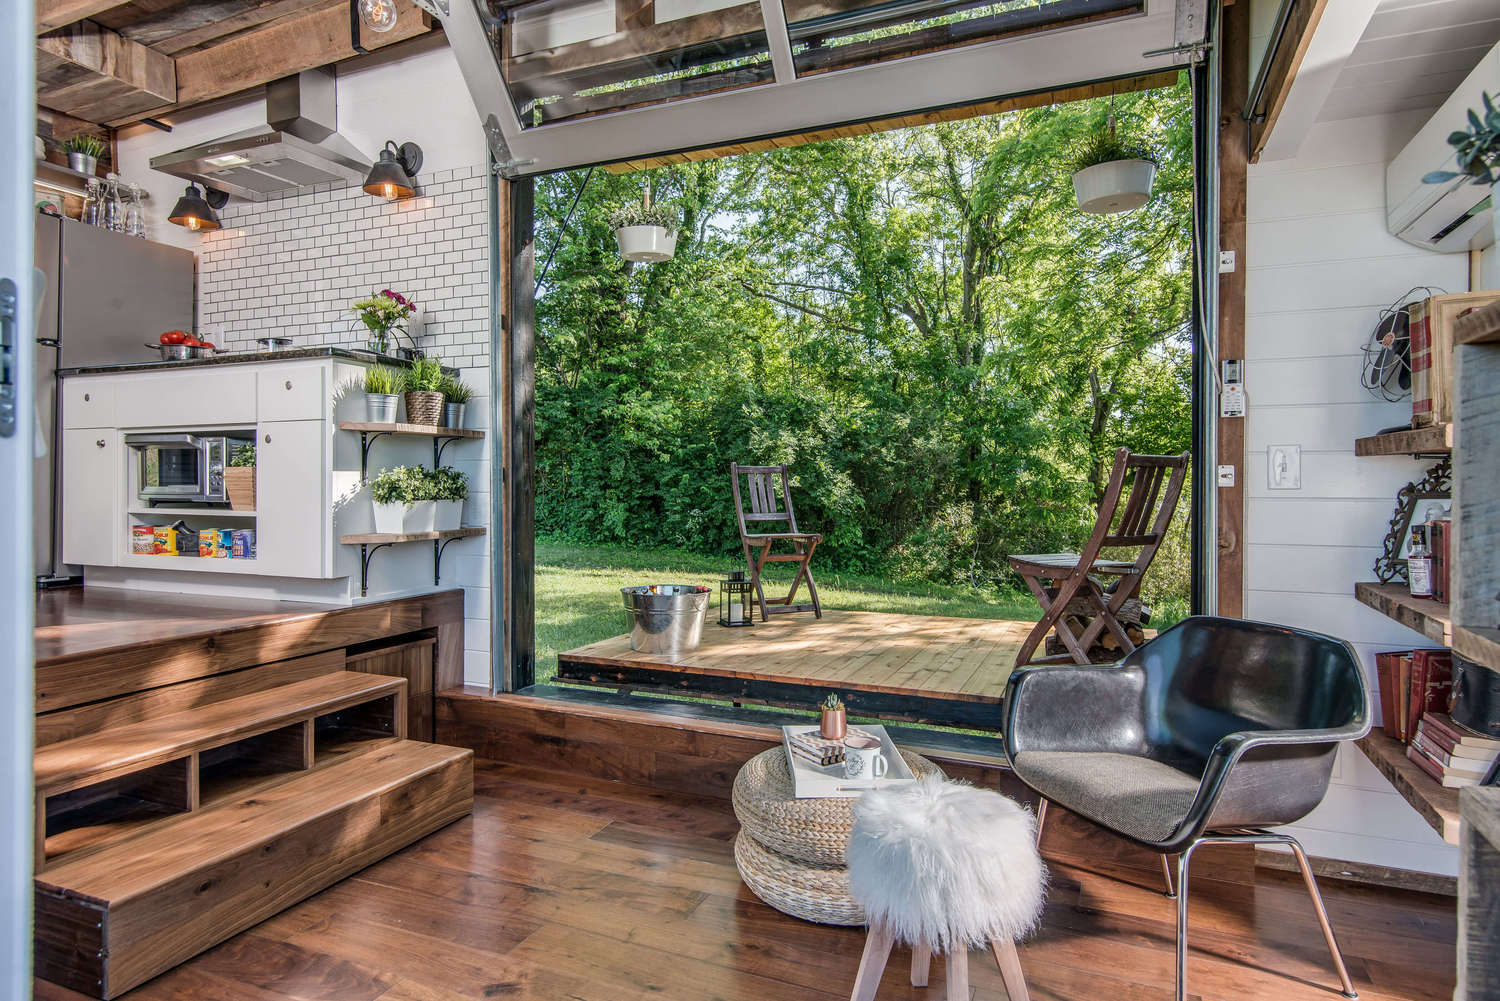 Tiny Home Designs: Inside A Tiny House With A Pop-Out Deck